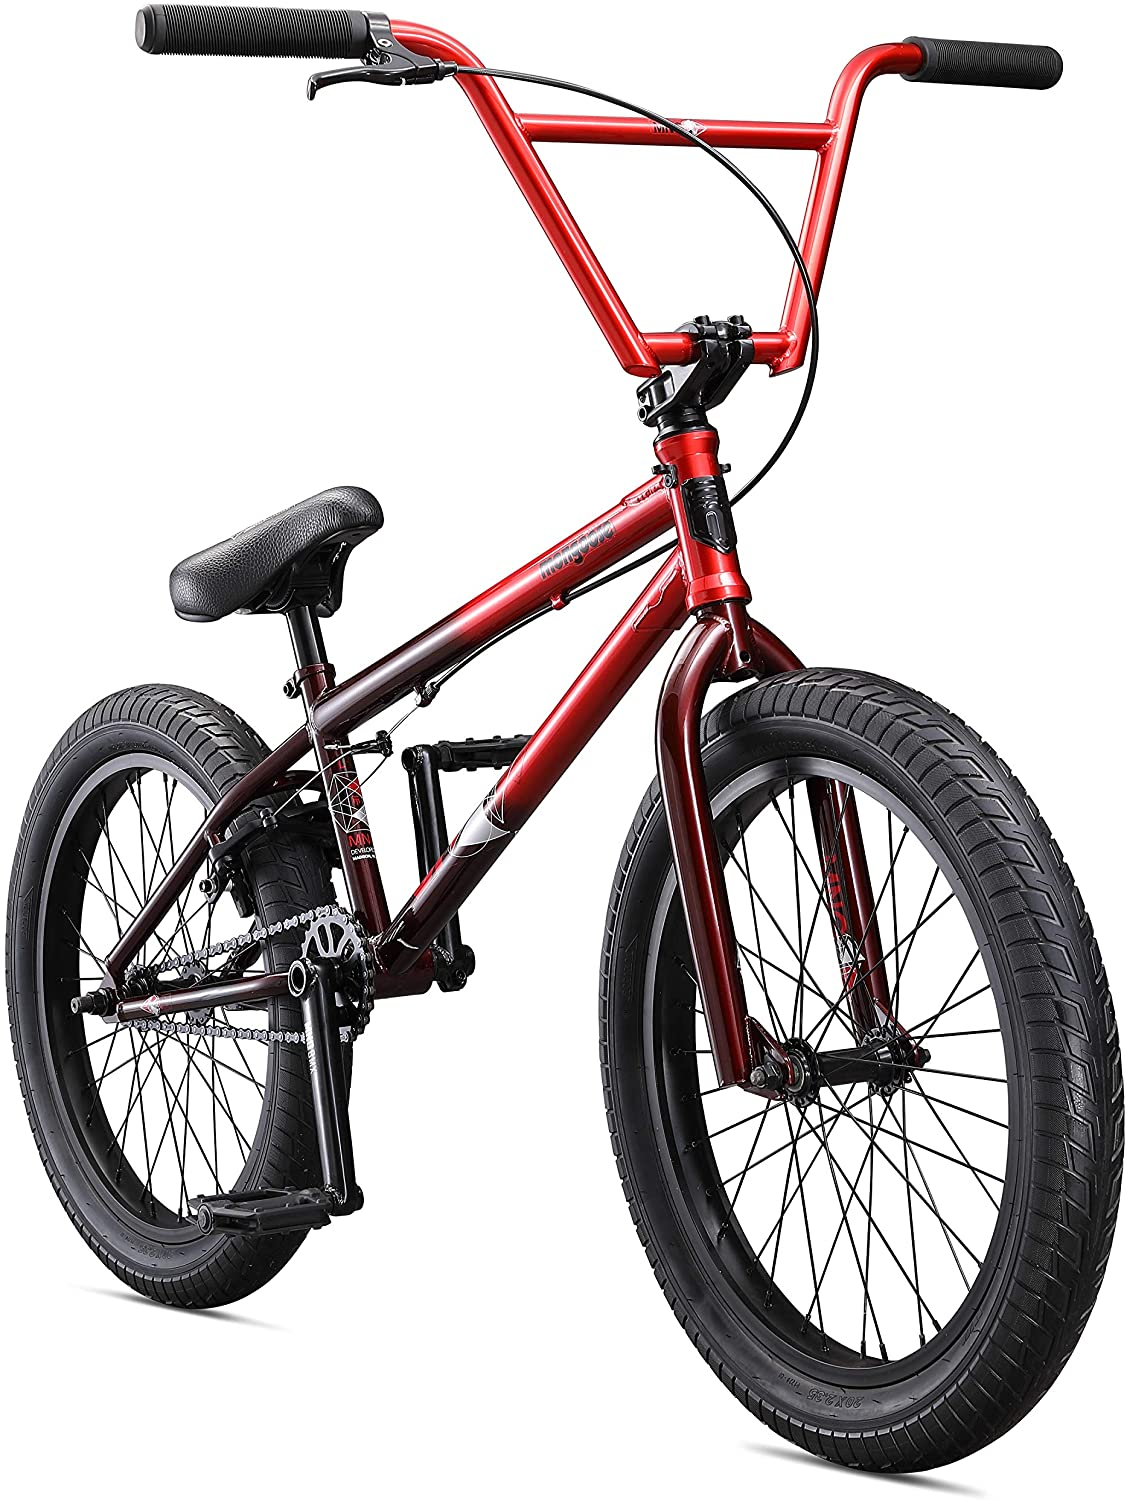 Featuring A Legion L60 Freestyle BMX Bike For Intermediate To Advanced Riders